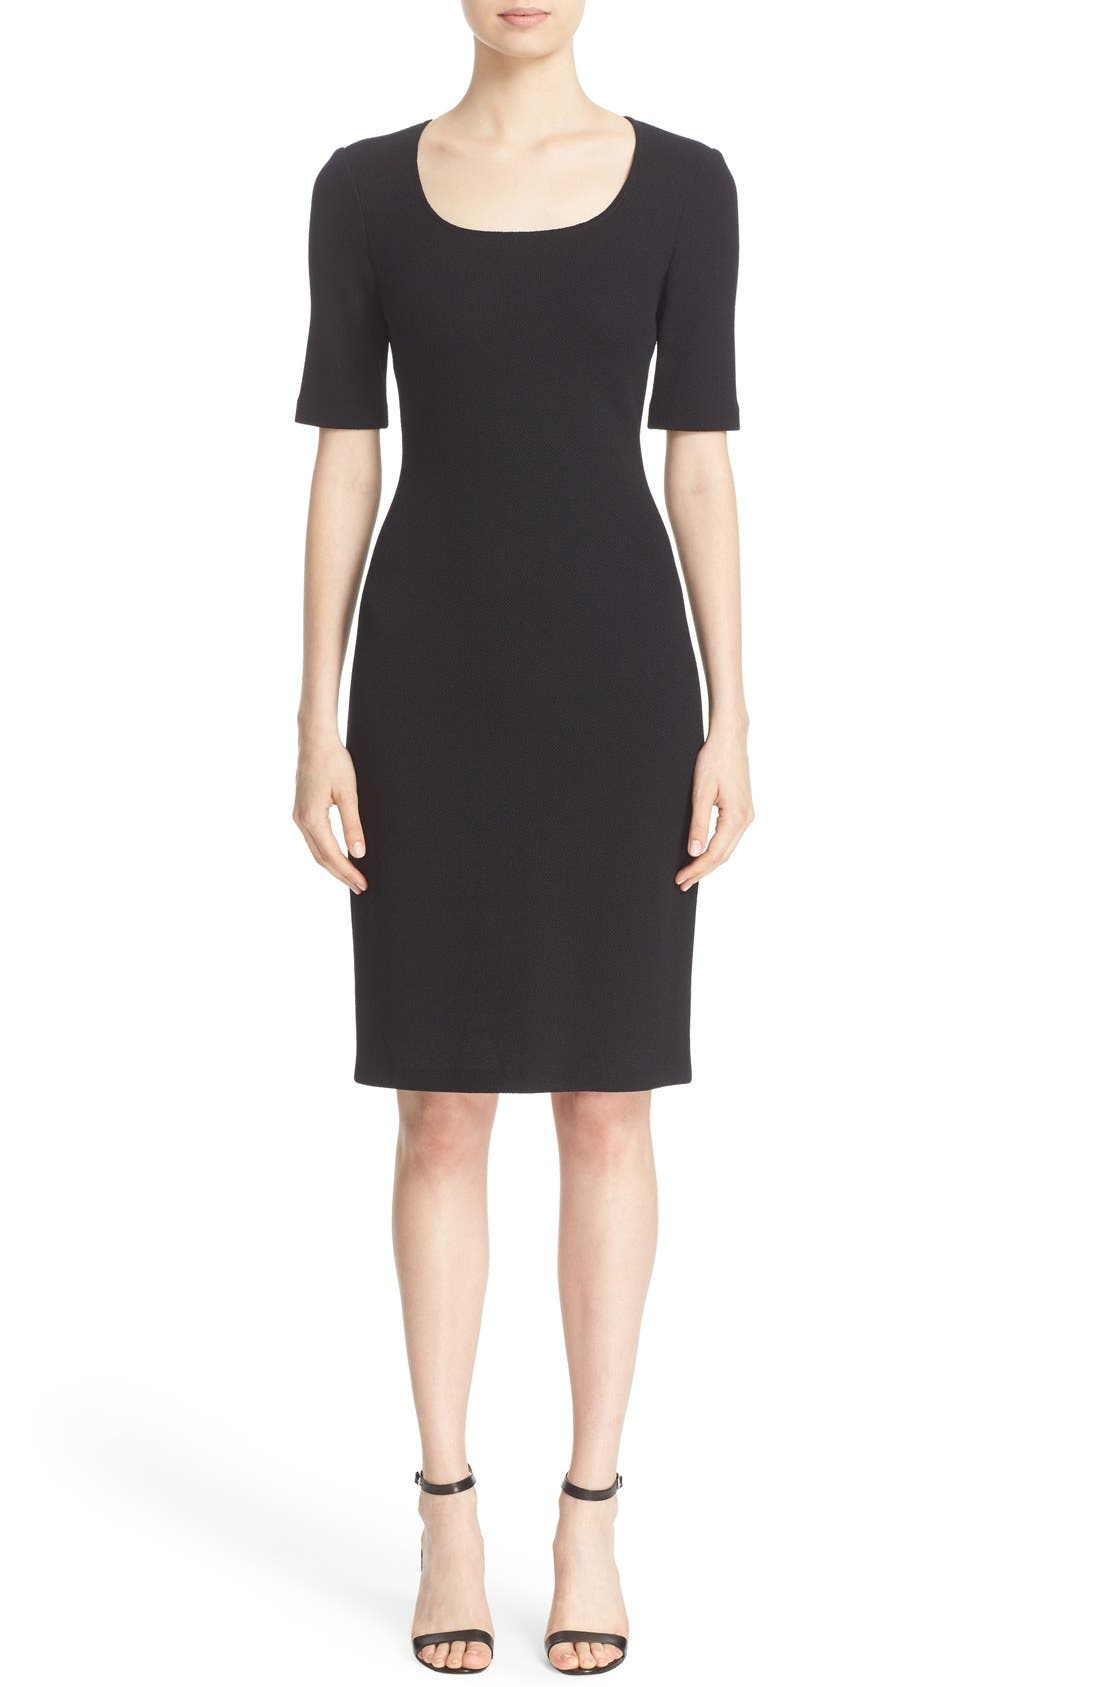 Alternate Image 1 Selected - St. John Collection Milano Piqué Knit Scoop Neck Dress